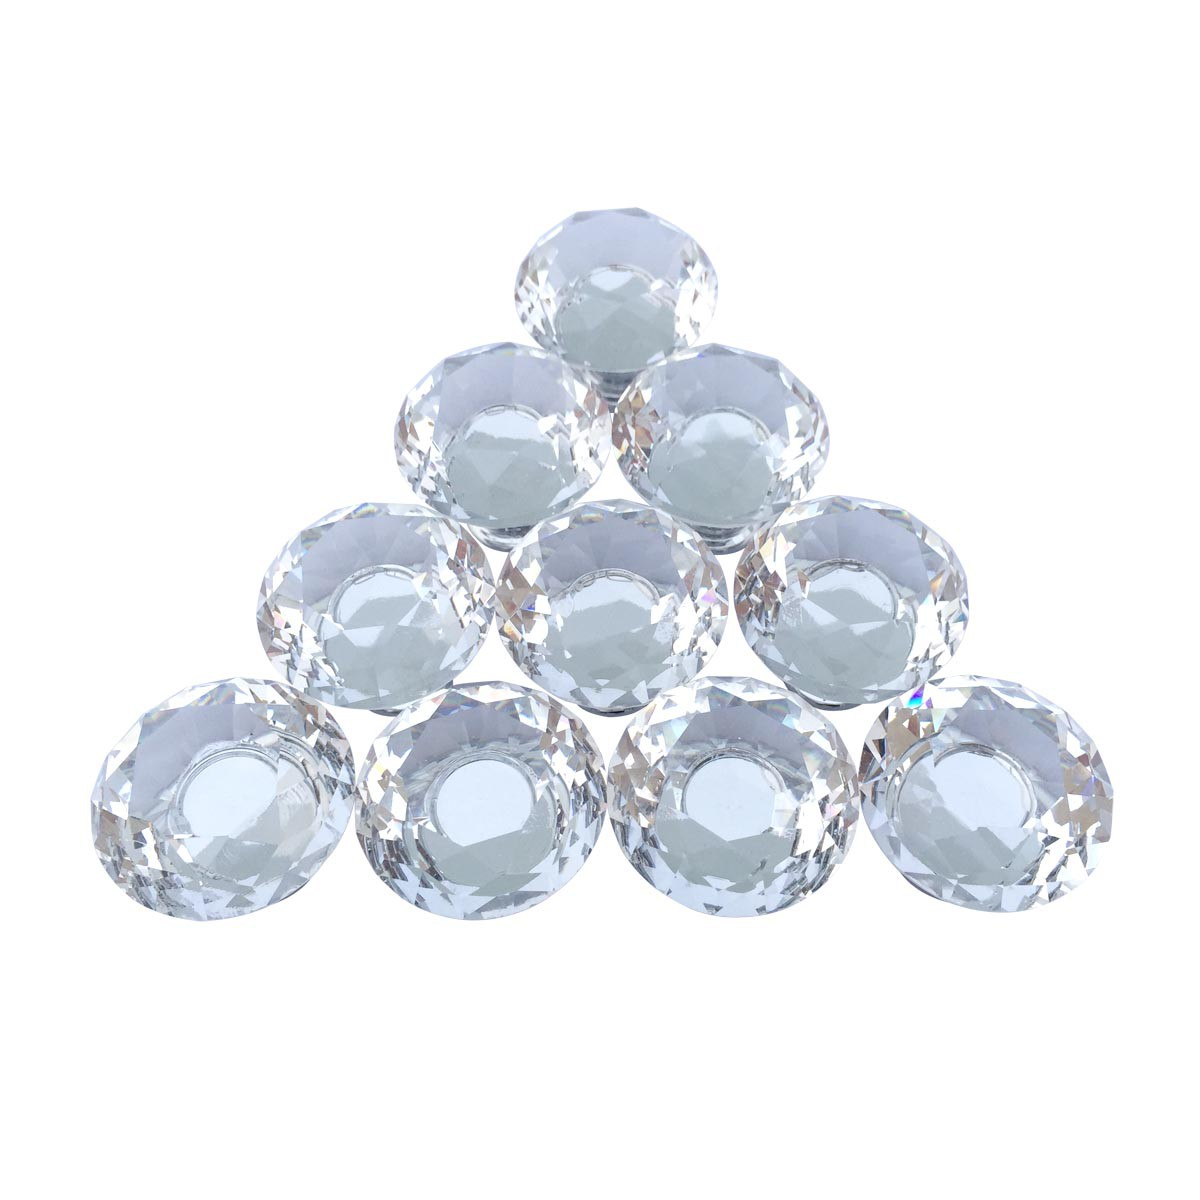 clear glass cabinet knobs mushroom head 1 in proj set of 10